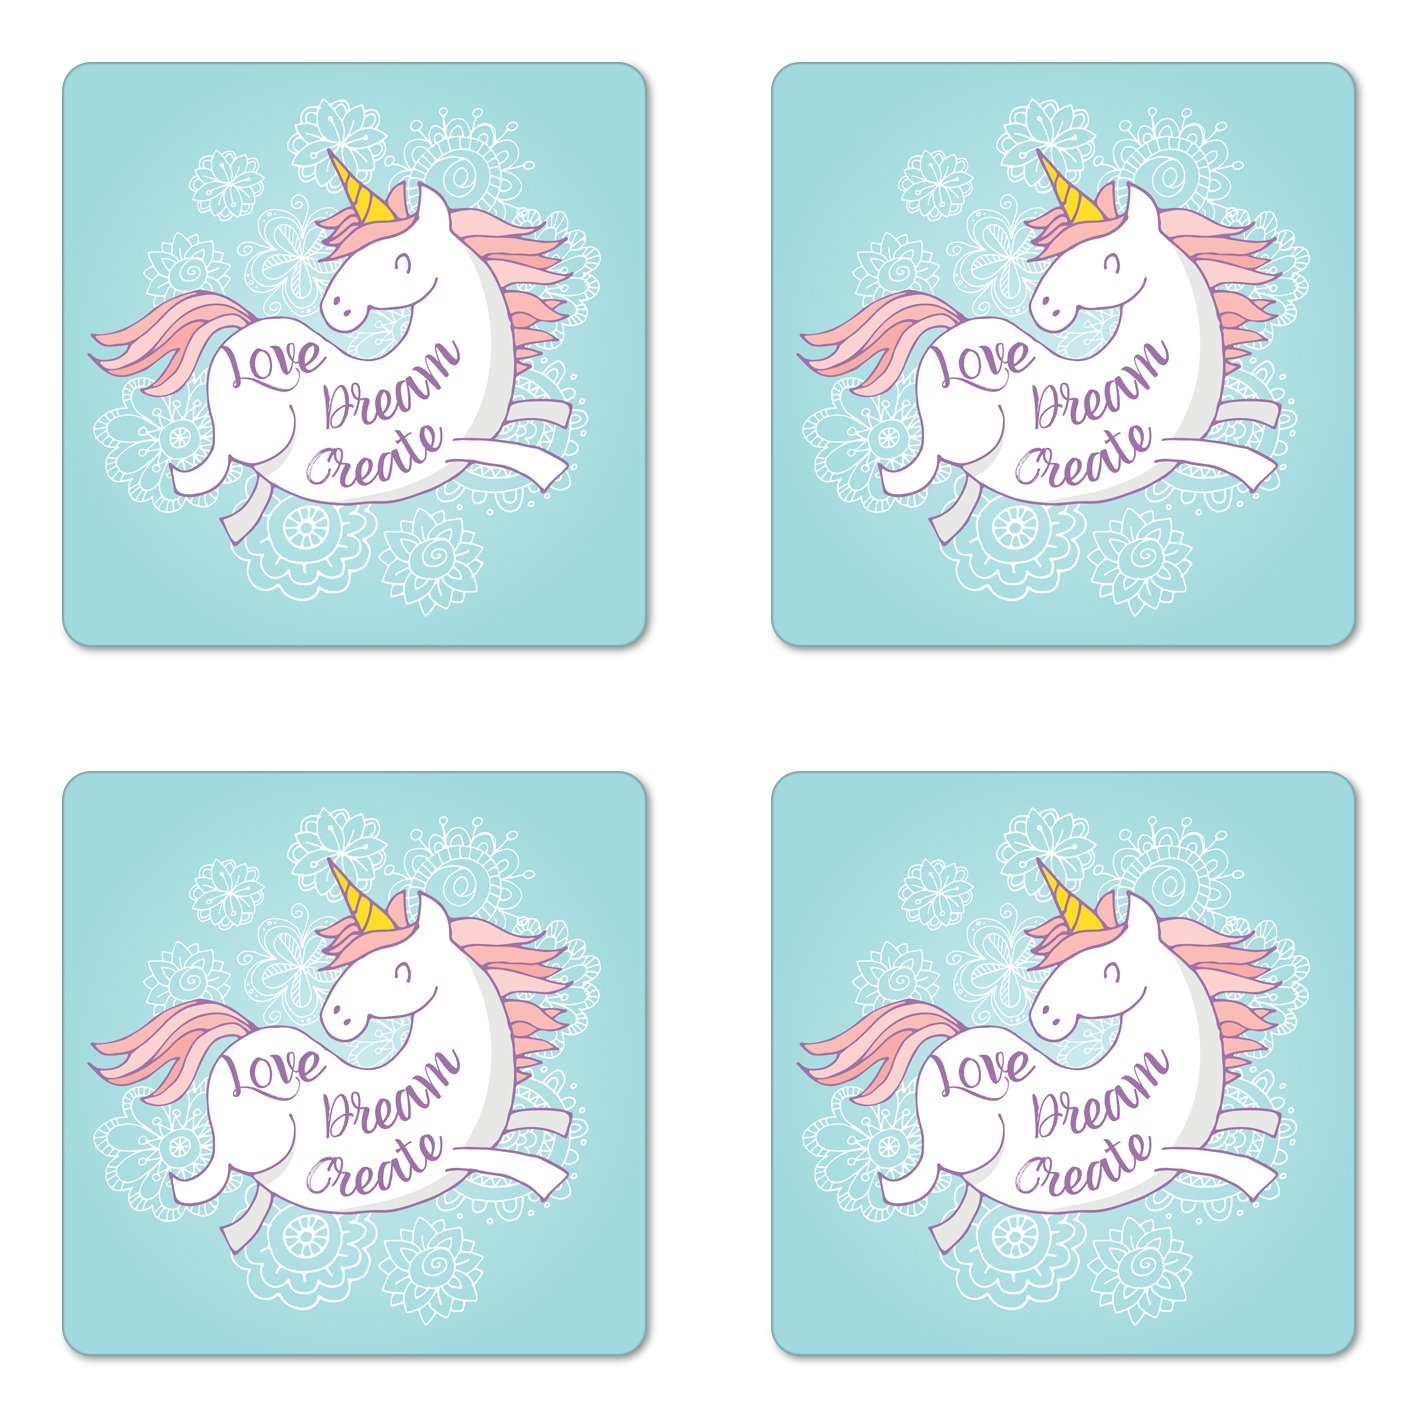 Lunarable Unicorn Coaster Set of Four, Cute Fantastic Animal with Horn on Doodle Style Floral Background Pastel Colors, Square Hardboard Gloss Coasters for Drinks, Multicolor